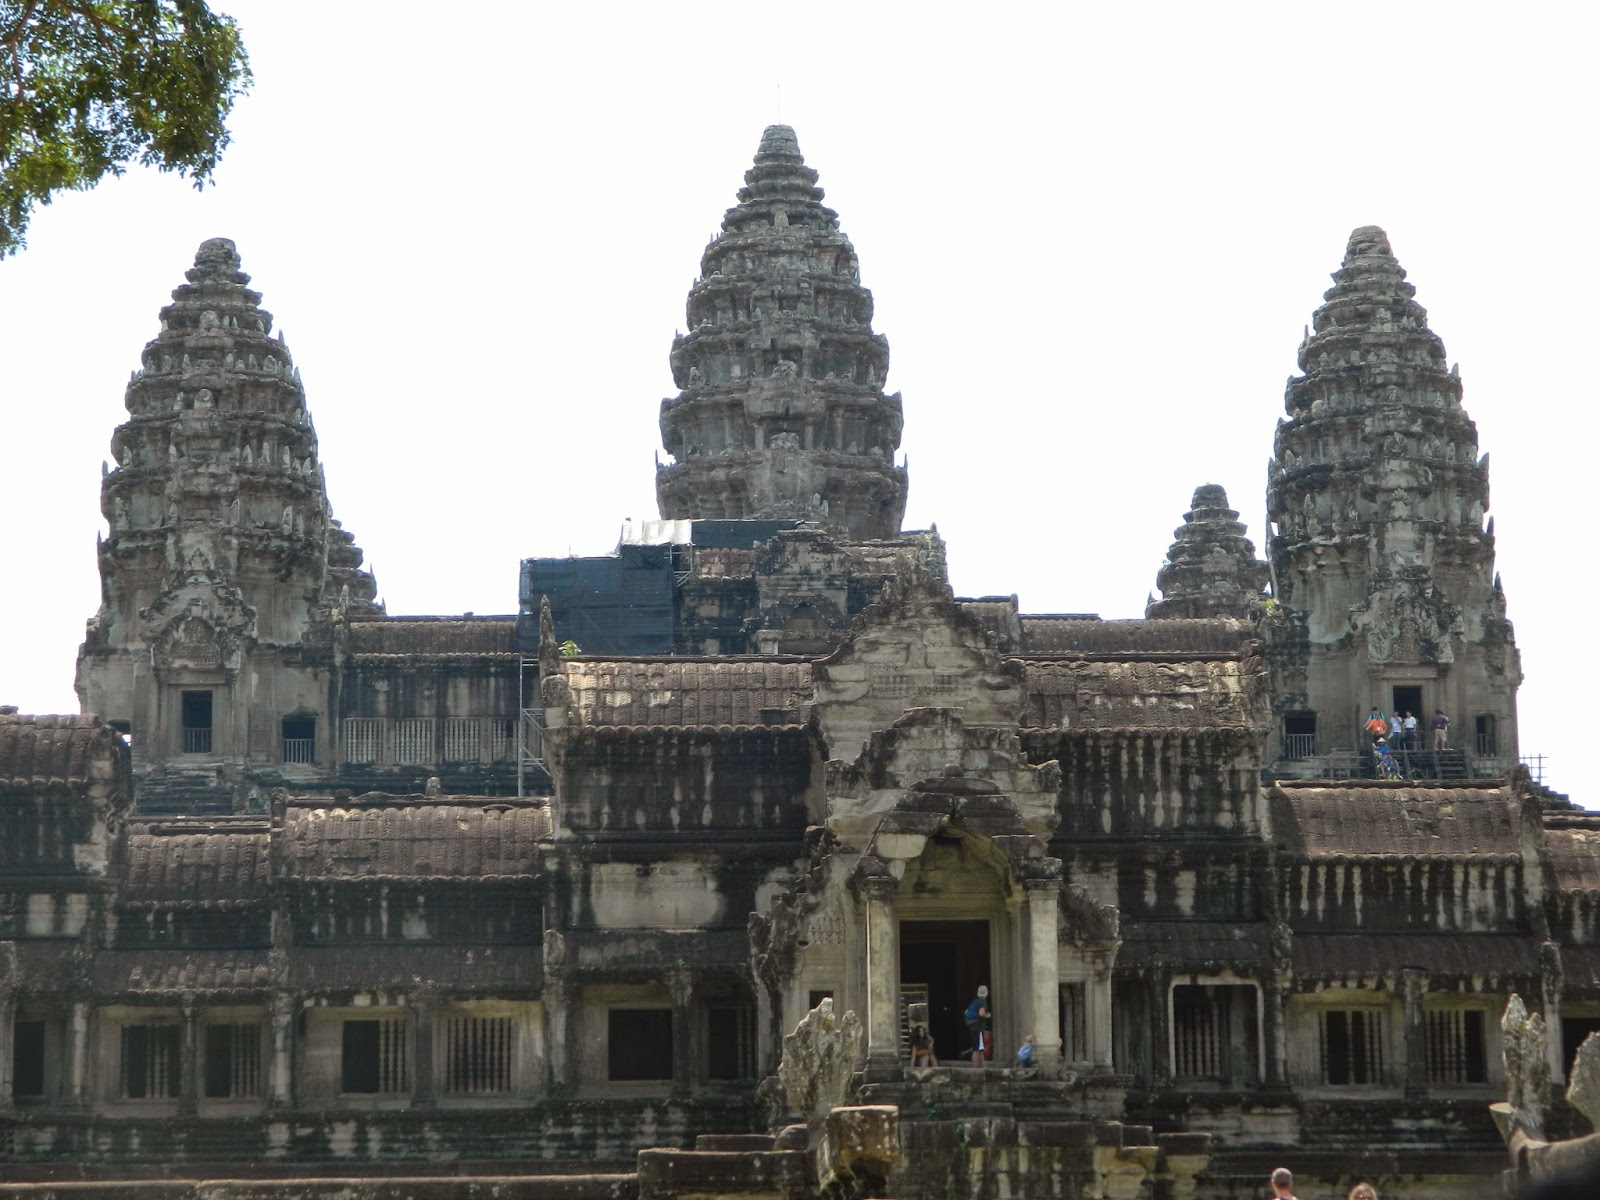 Upper galleries of the AngkorWat Temple